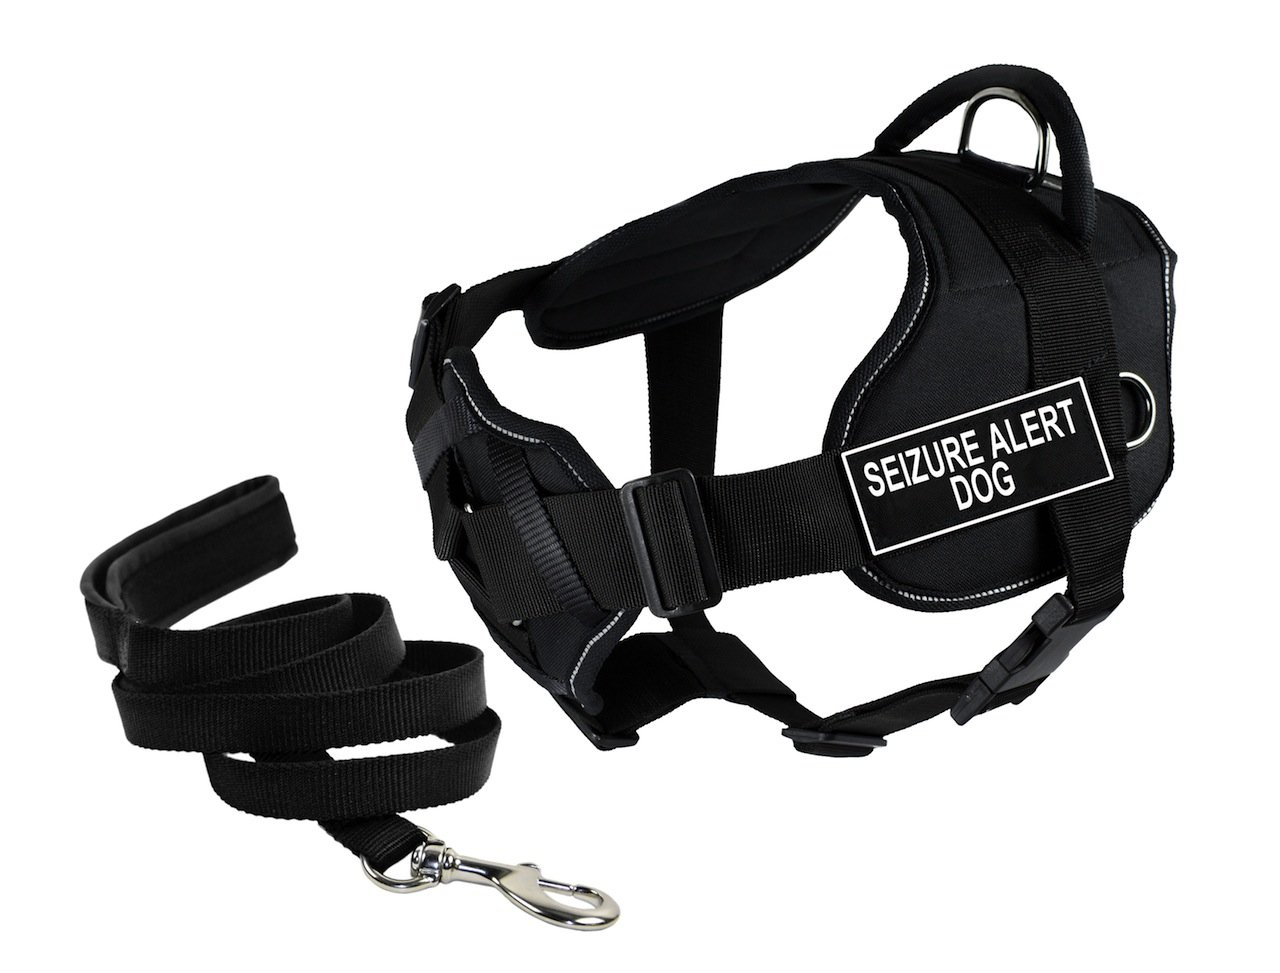 Dean & Tyler's DT Fun Chest Support ''SEIZURE ALERT DOG '' Harness with Reflective Trim, Large, and 6 ft Padded Puppy Leash.